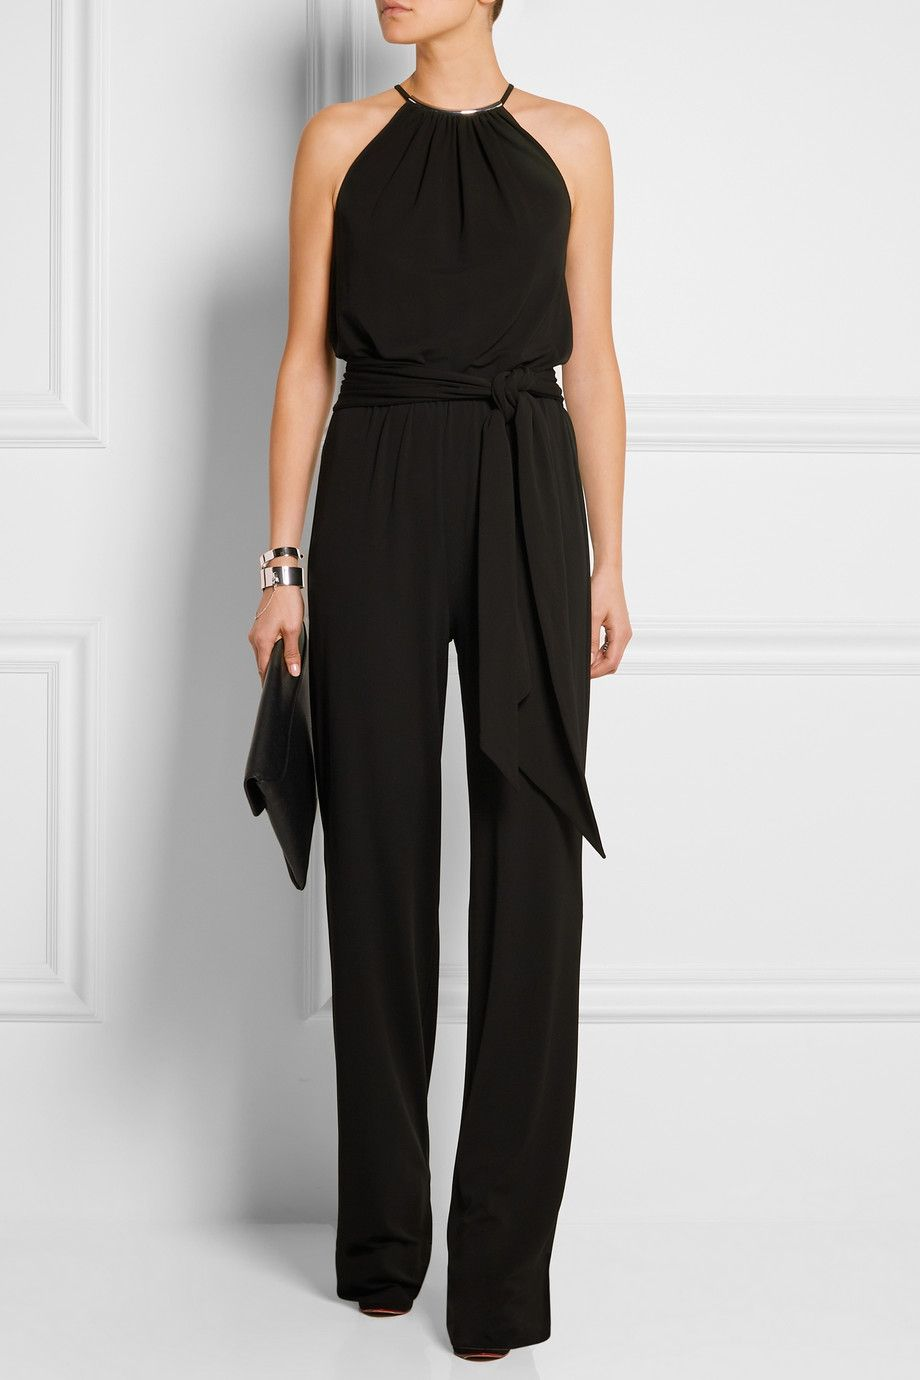 d099f8905a1520 Next time I have a dressy event, I want something like this! Jumpsuit  Elegante